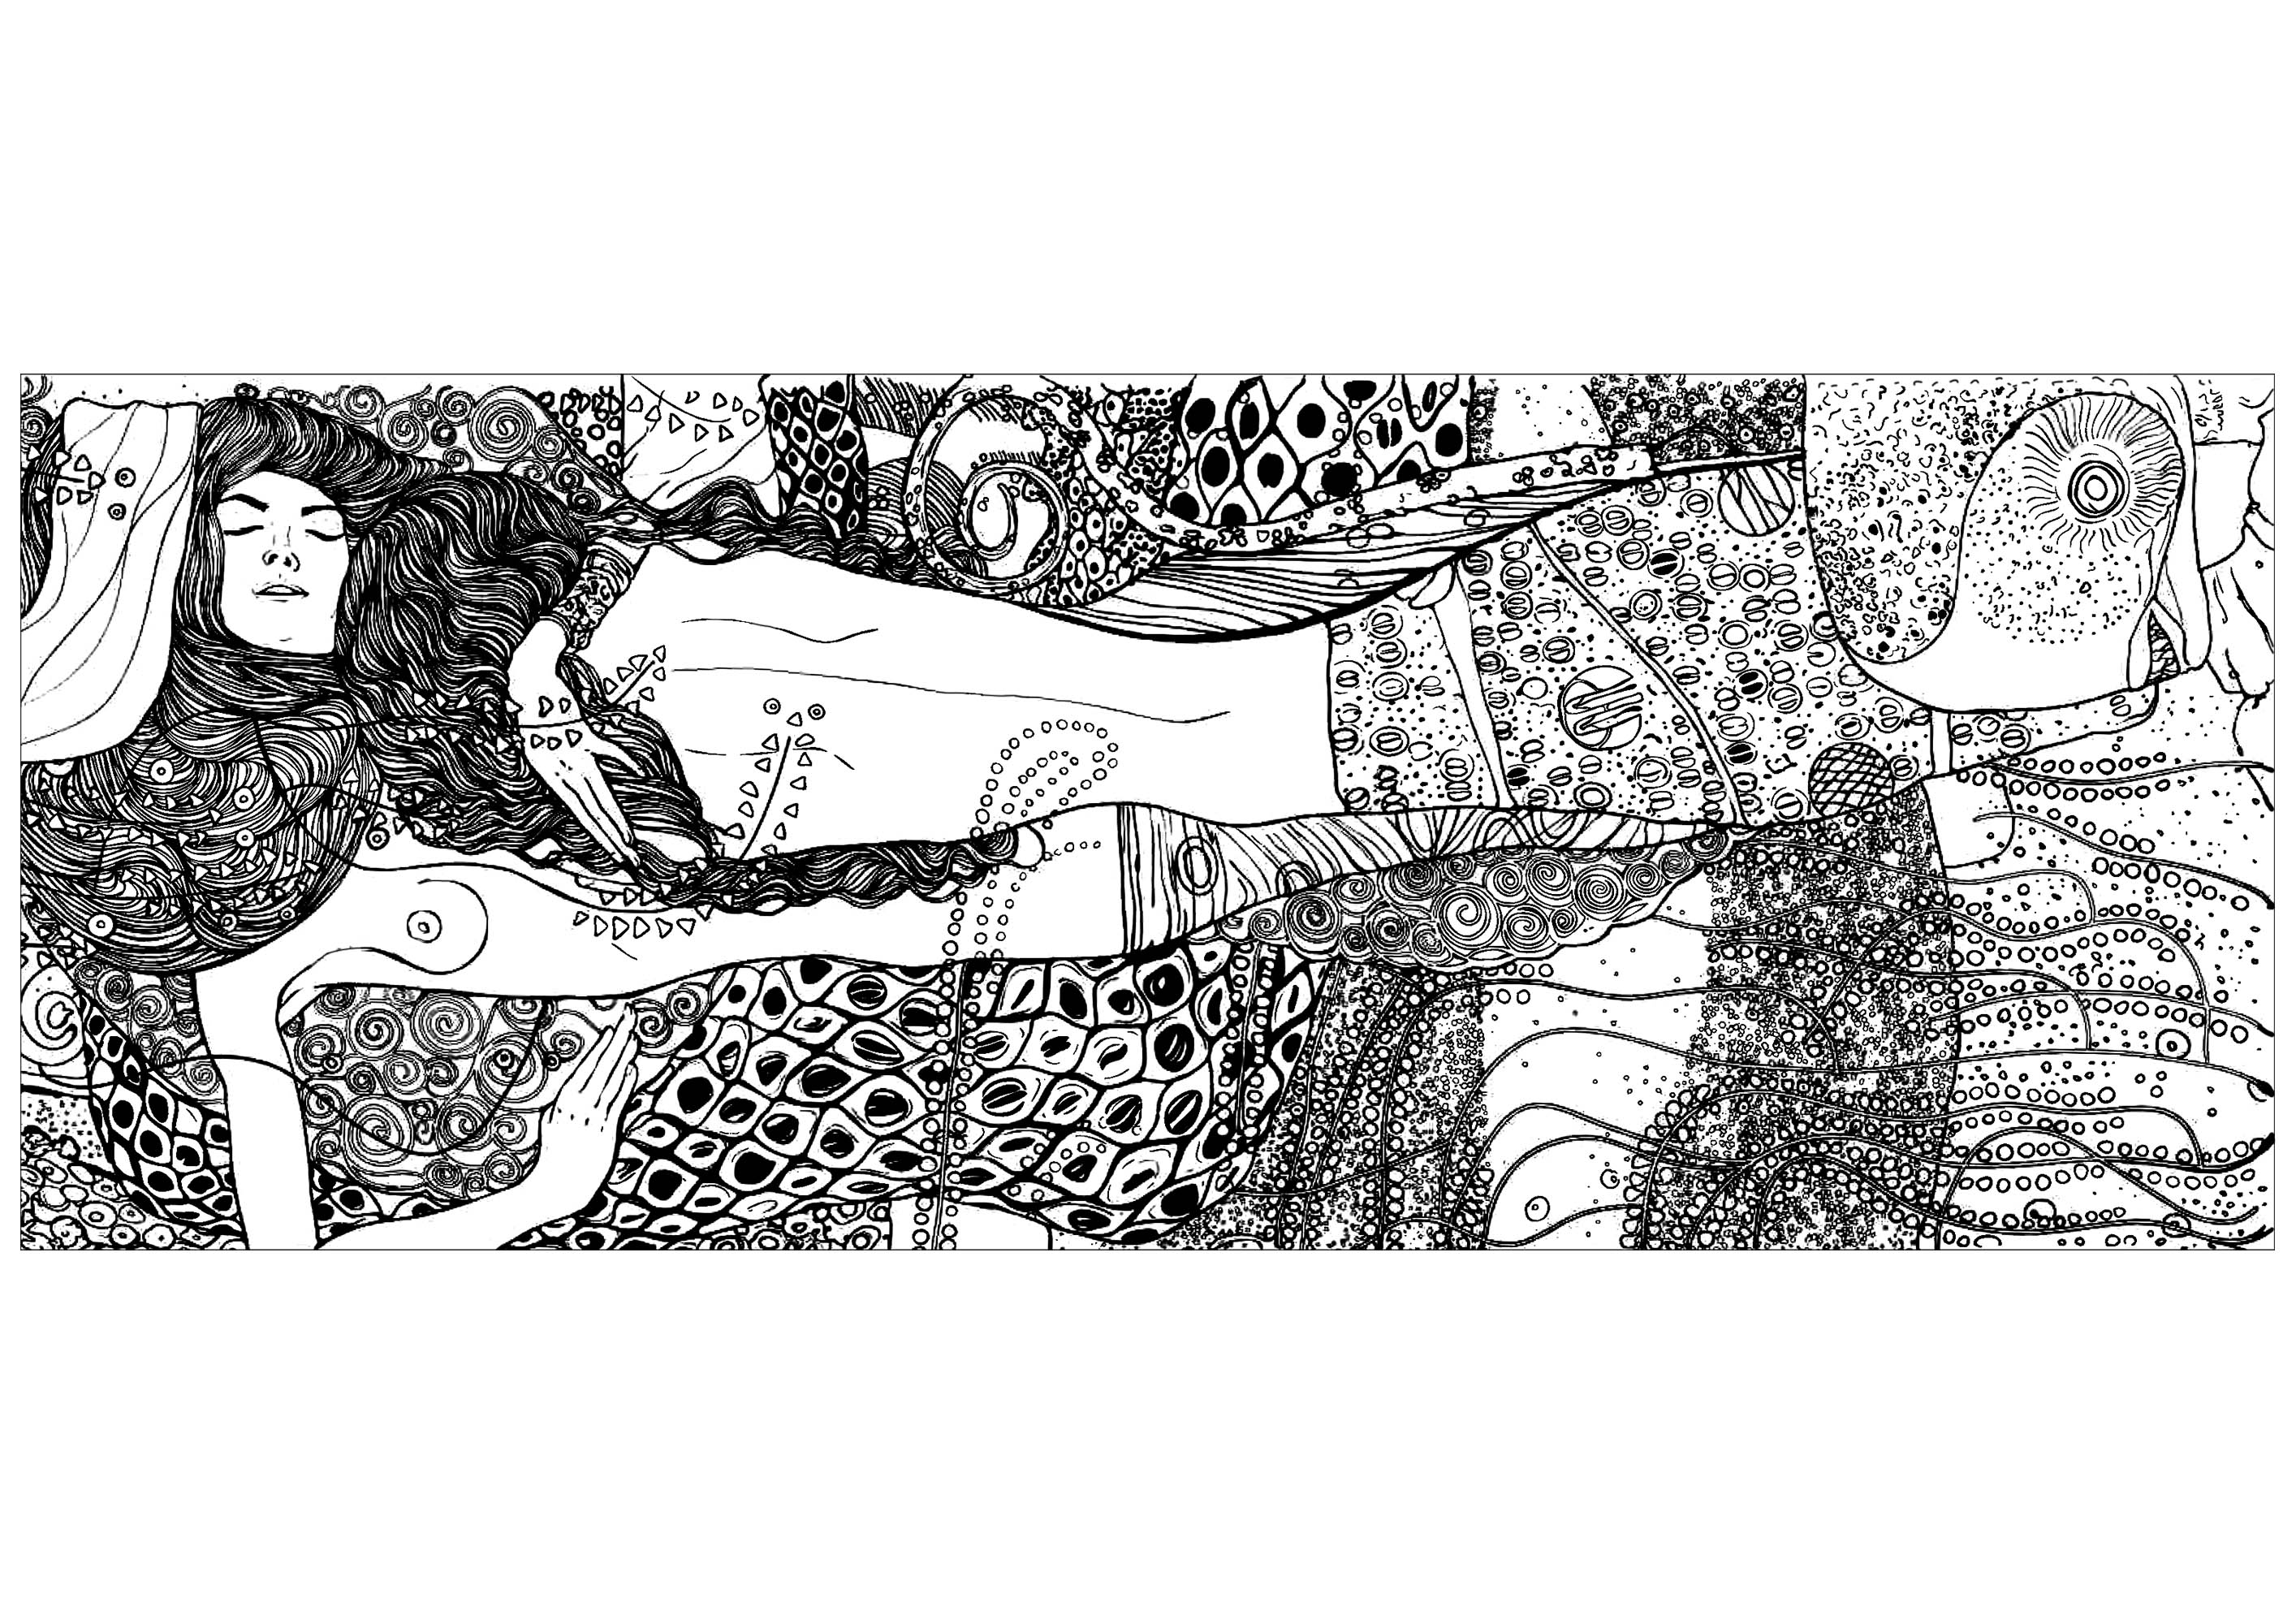 Coloring page created from the painting 'Water serpents I' by Gustav Klimt